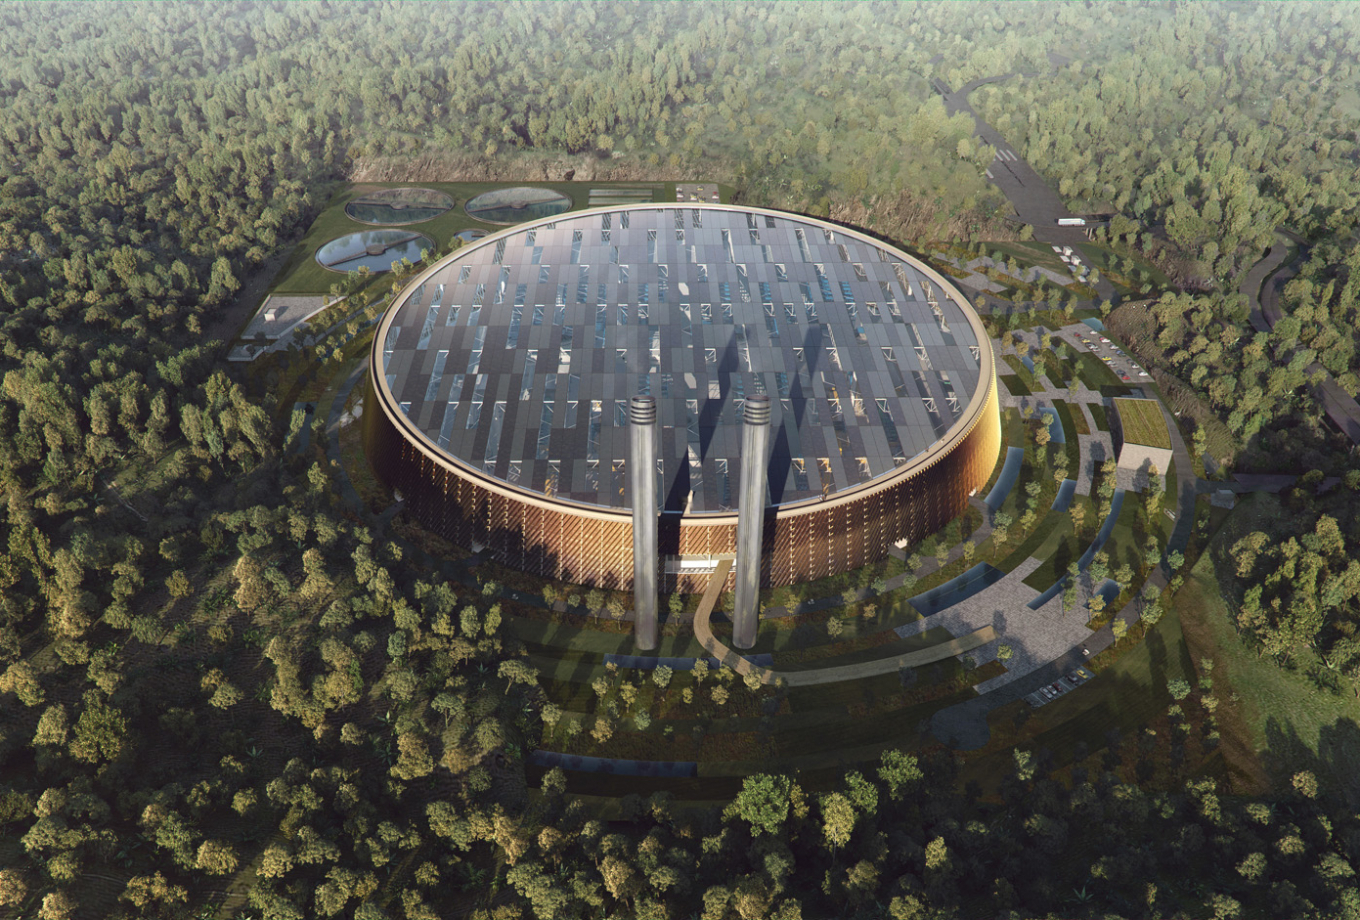 shenzhen_waste_to_energy_plant_01_visualization_1